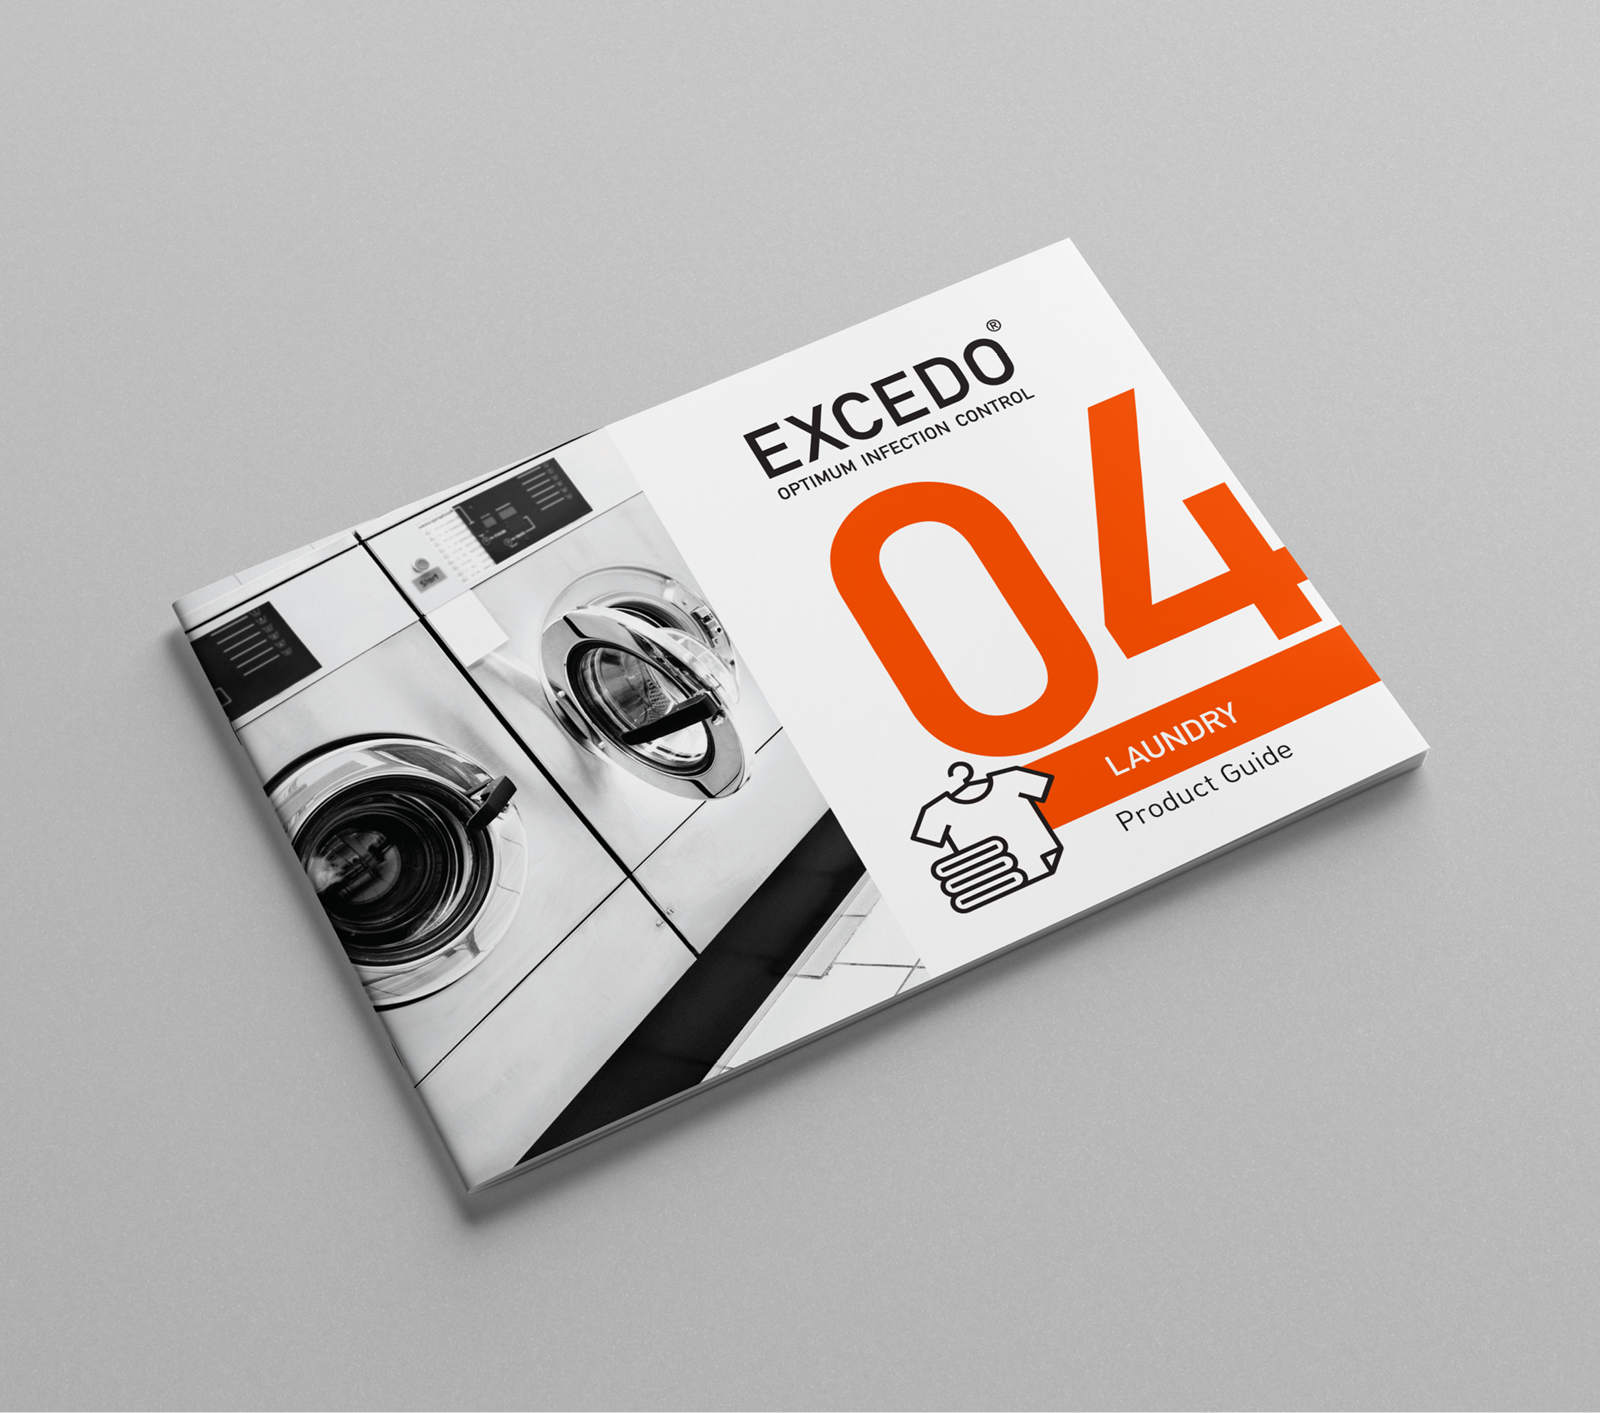 healthcare consumable branding and brochure design